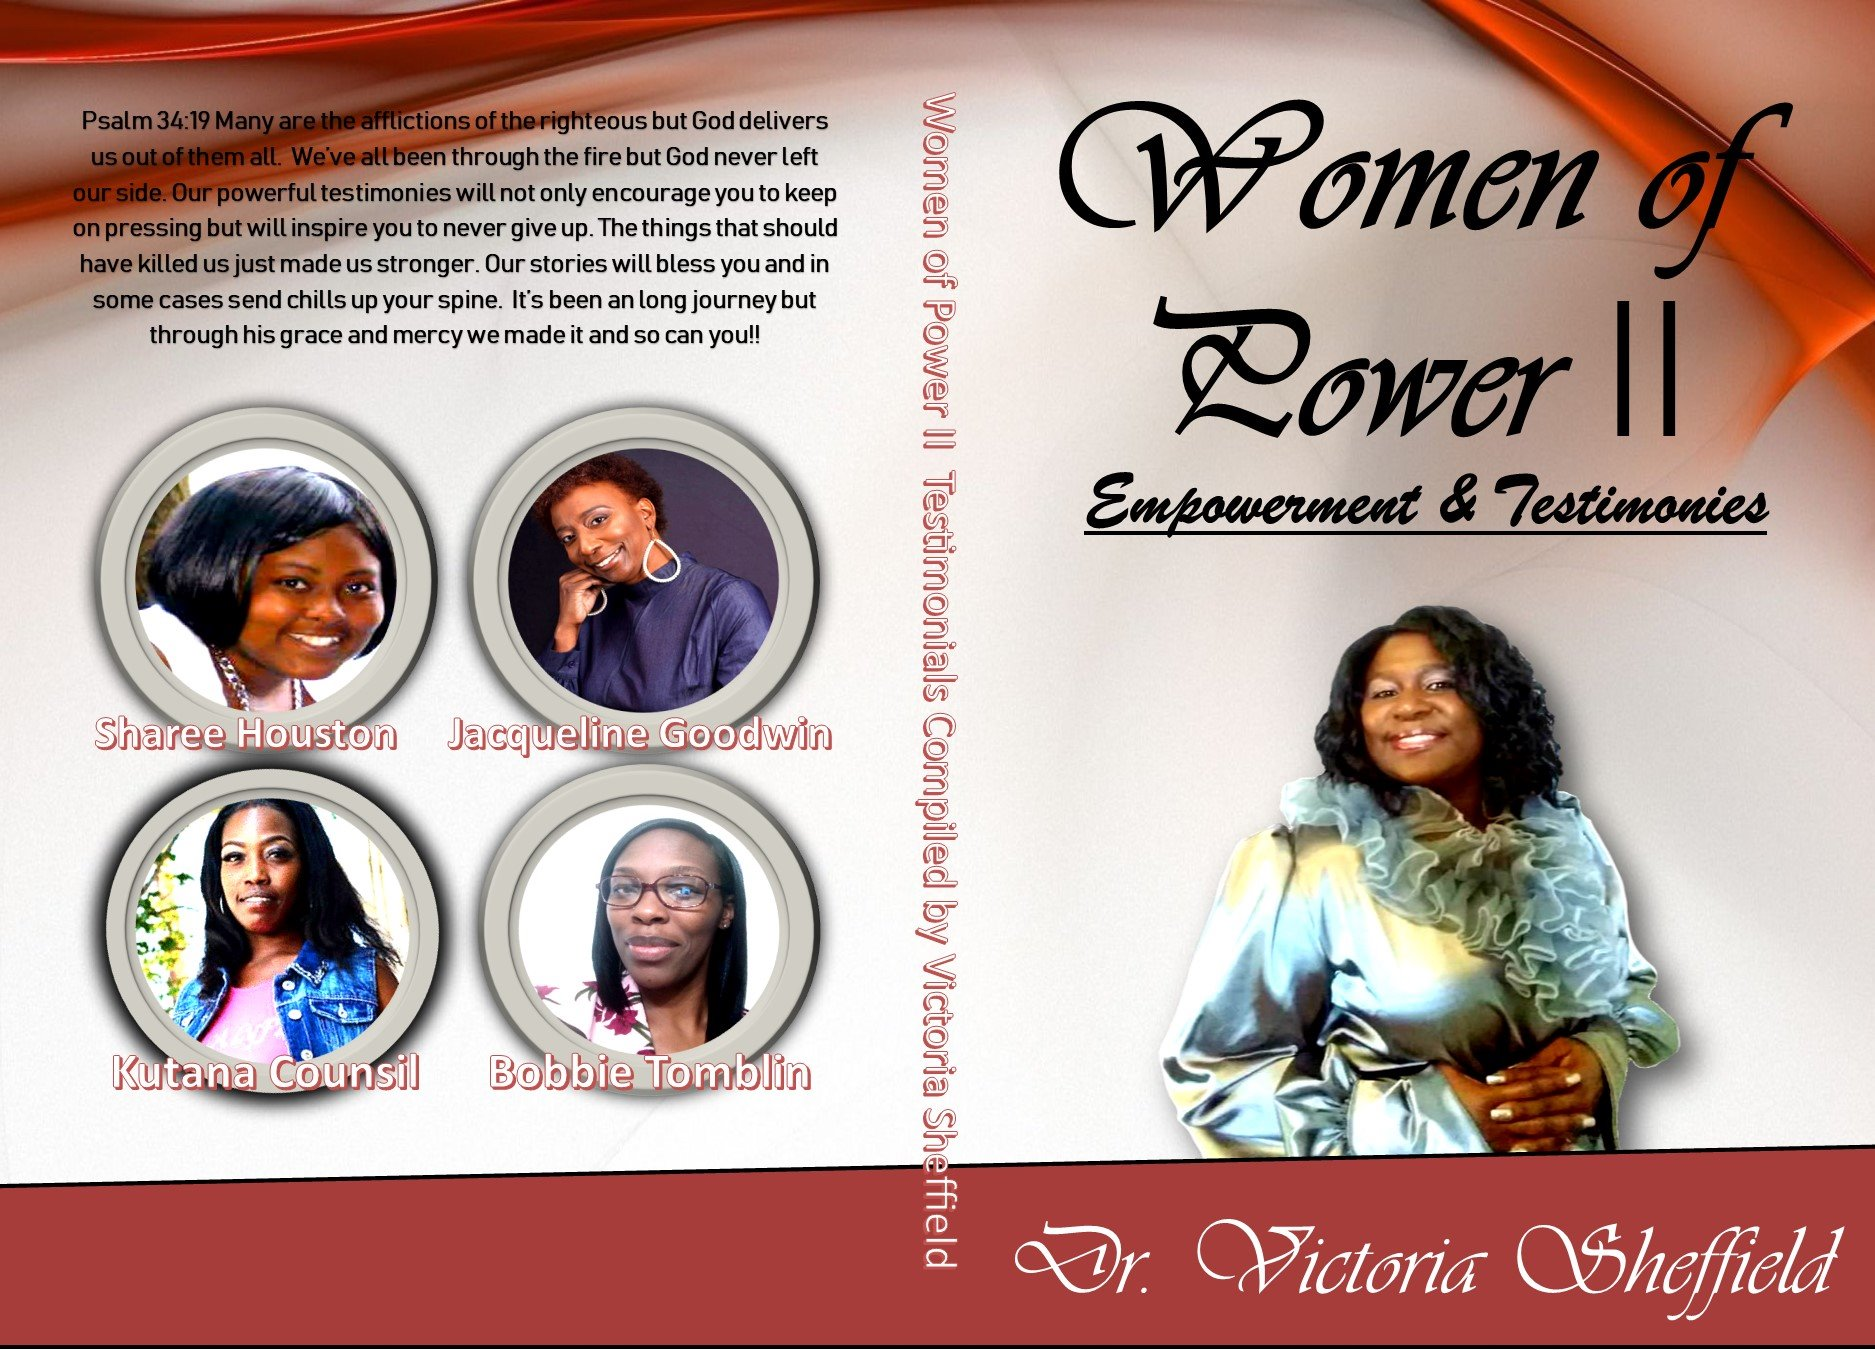 women of Power II